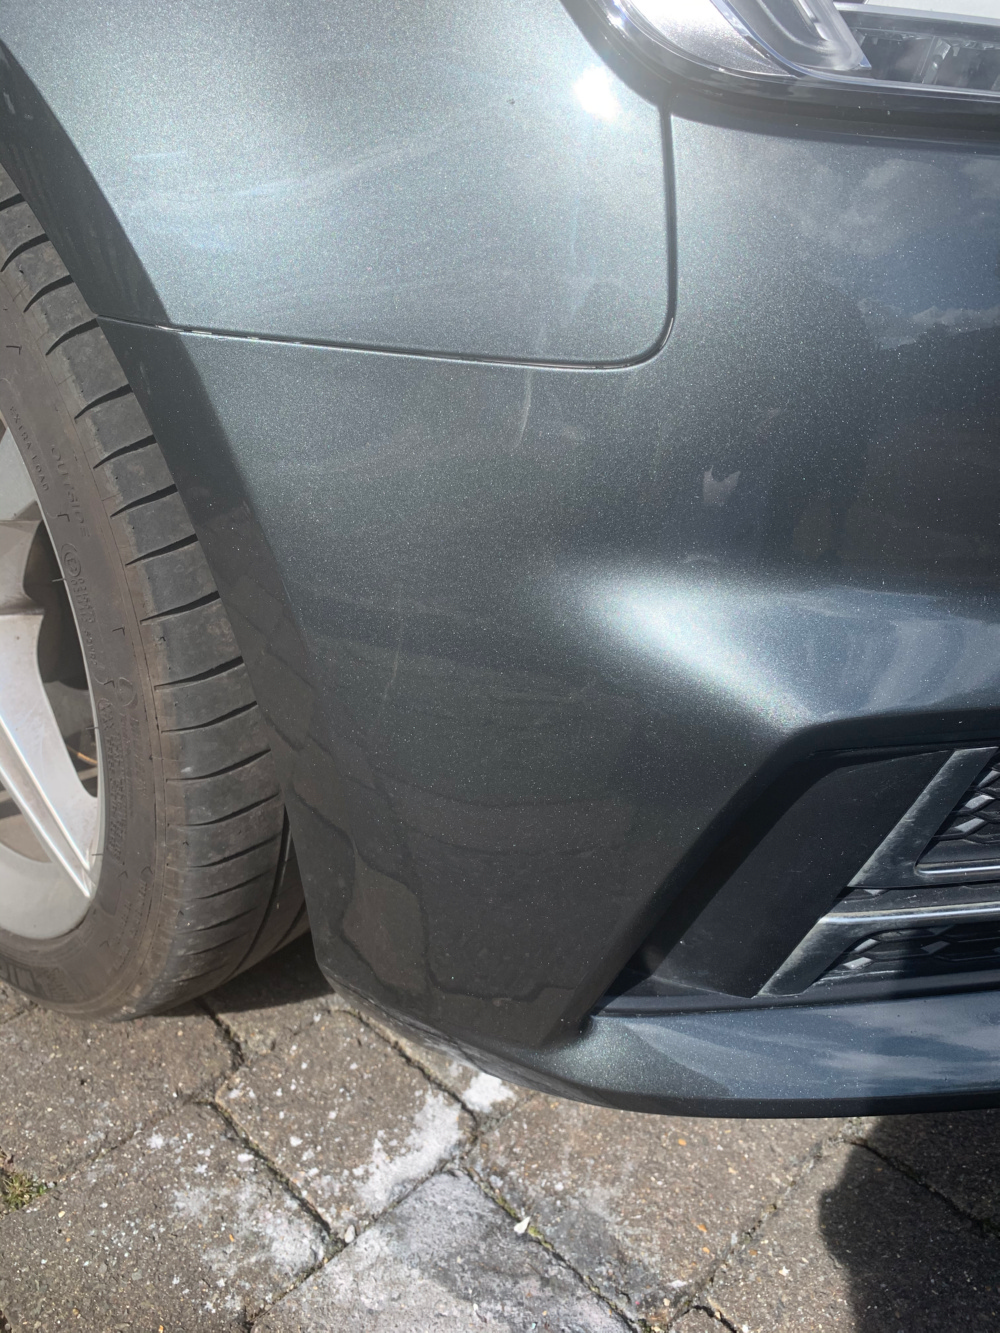 scuff marks on bumper after repair